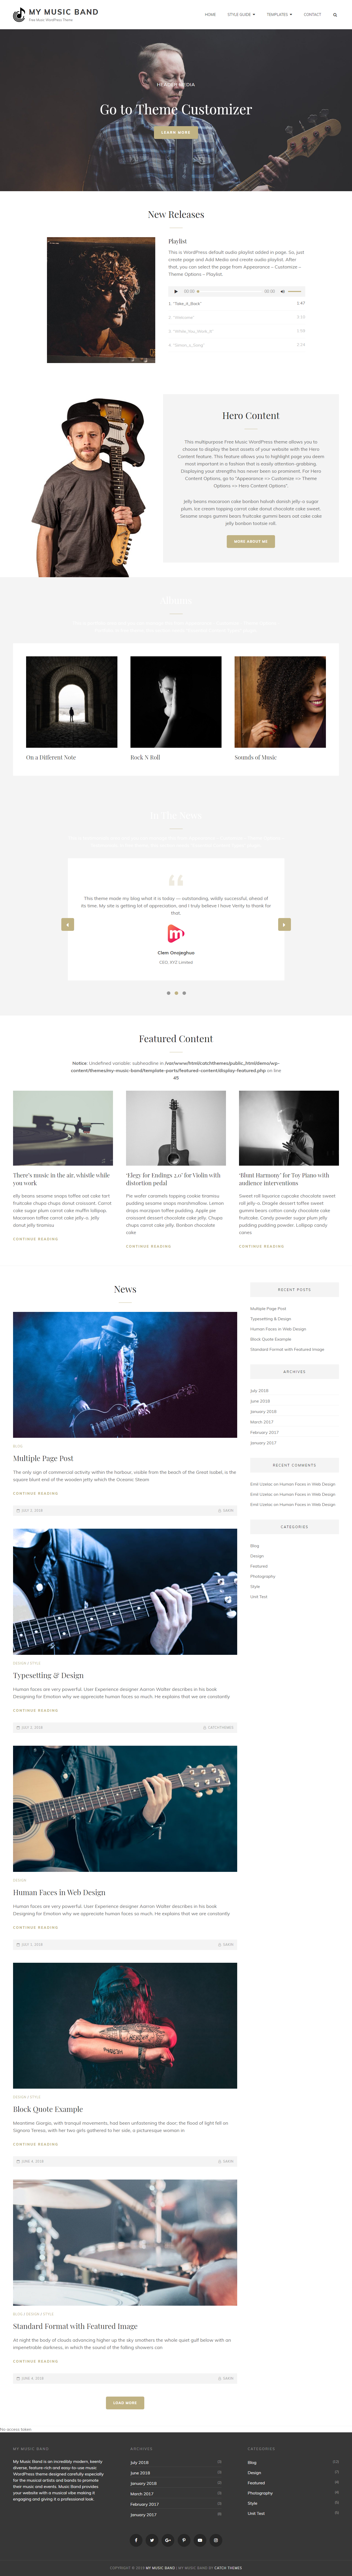 my music band best free video and music wordpress theme - 10+ Best Free Video and Music WordPress Themes